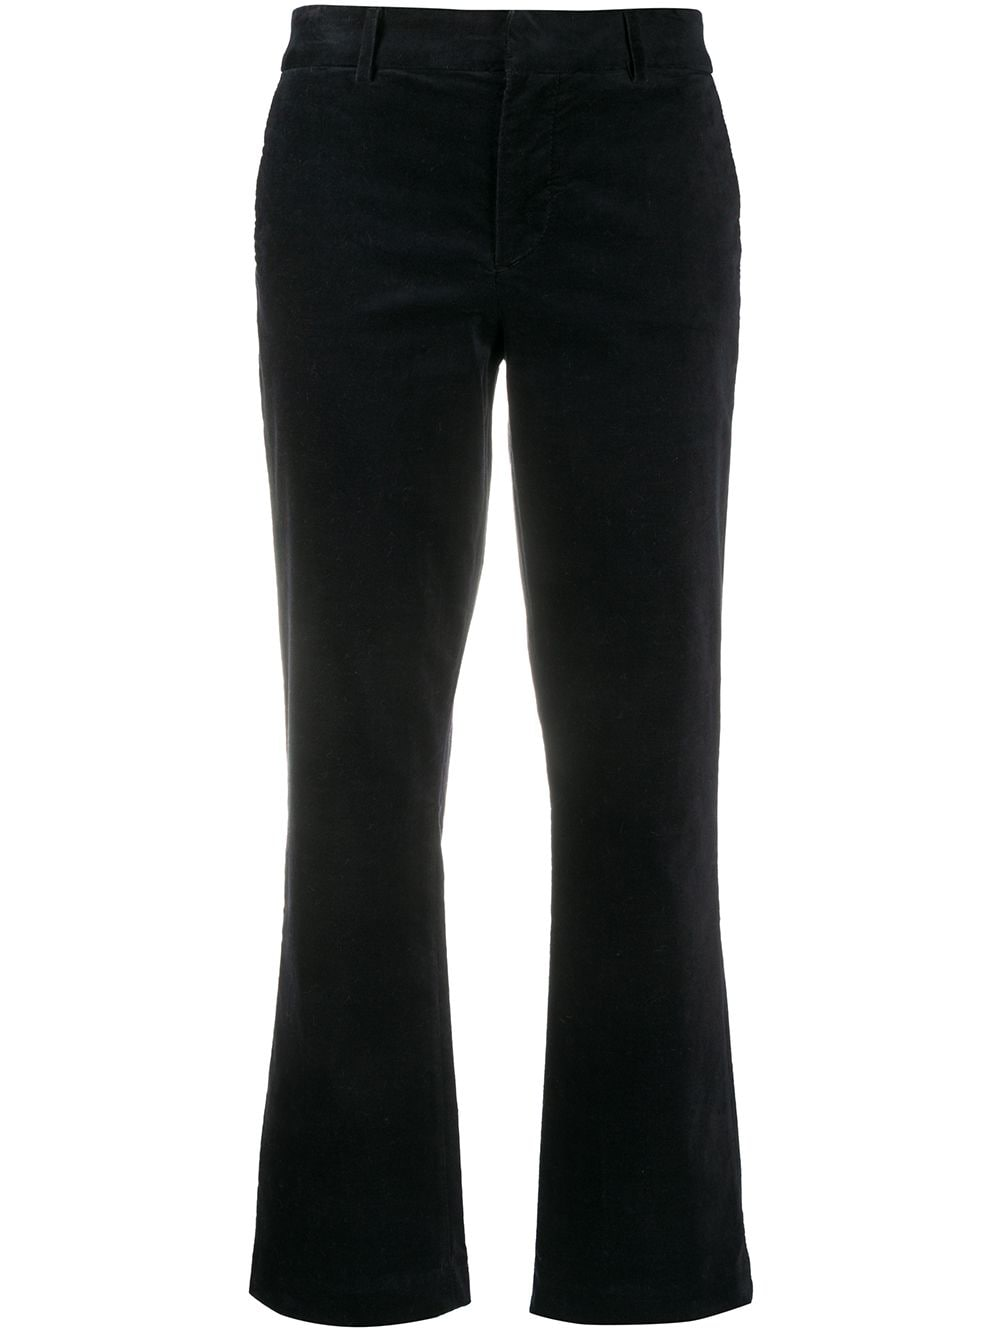 Black stretch-cotton cropped leg trousers  7 FOR ALL MANKIND |  | JSYZX330BL-CROPPED BOOT CHINIDARK BLUE